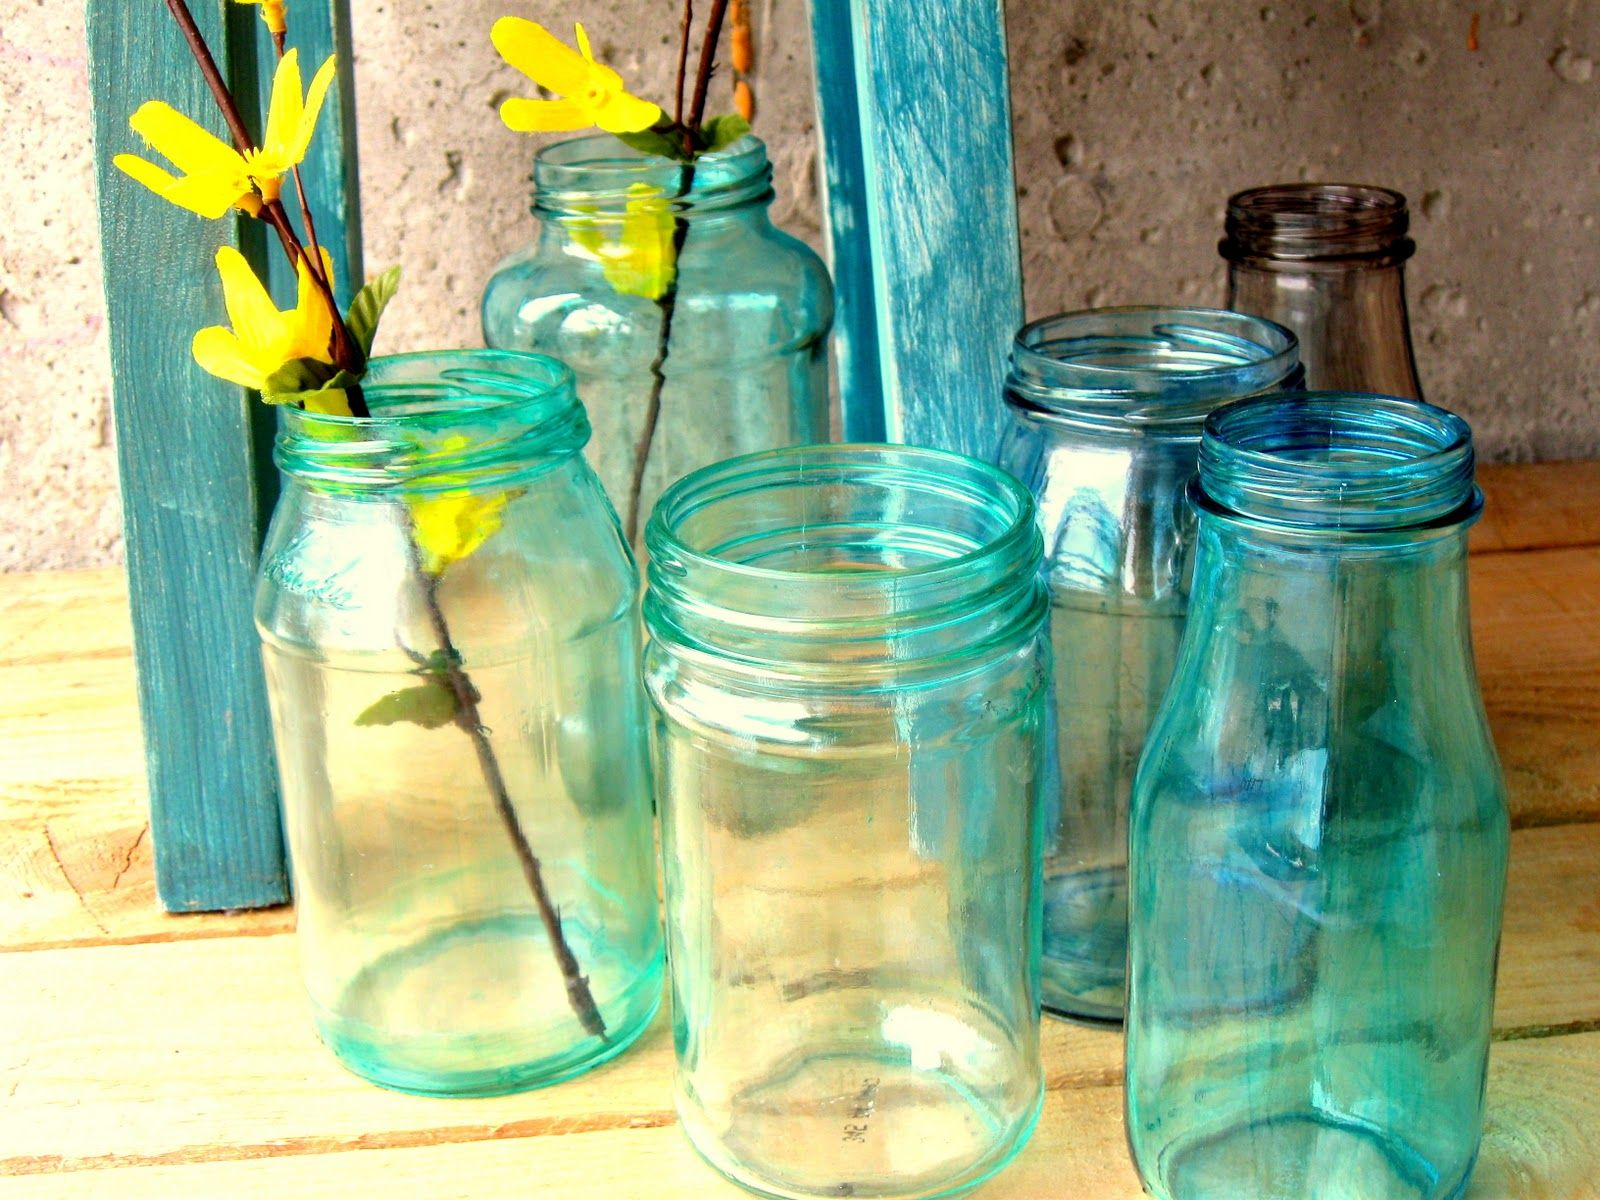 Do it yourself colored glass jars elmers glue and food color via craftberry bush mason blue glass canning jar diy with food coloring mod podge and elmers solutioingenieria Image collections